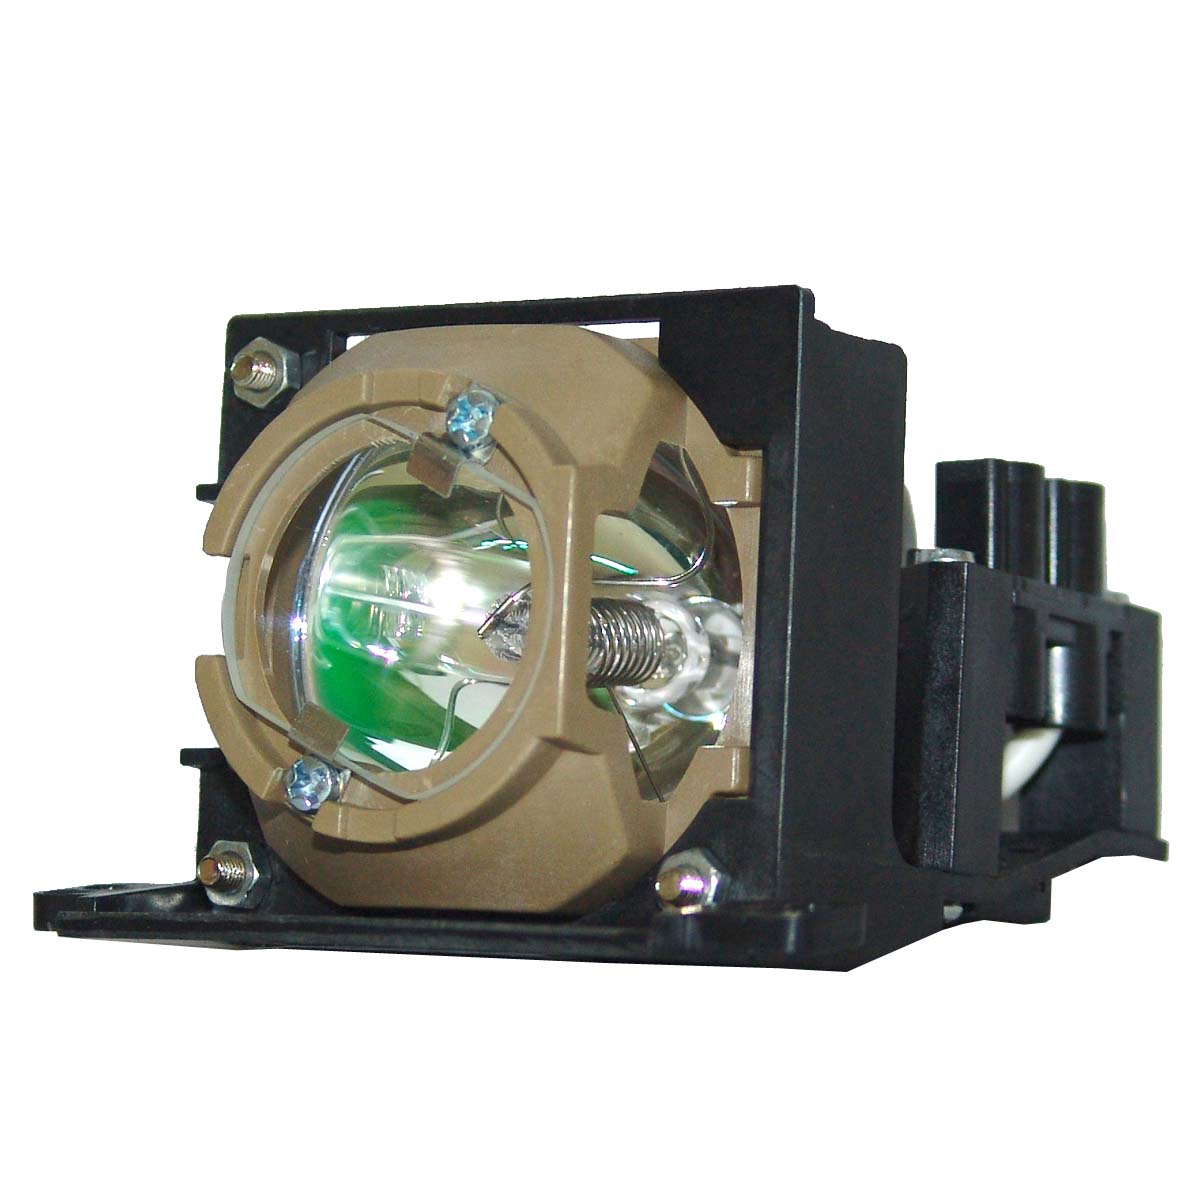 Medion SP.83401.001 Projector Lamp Housing DLP LCD